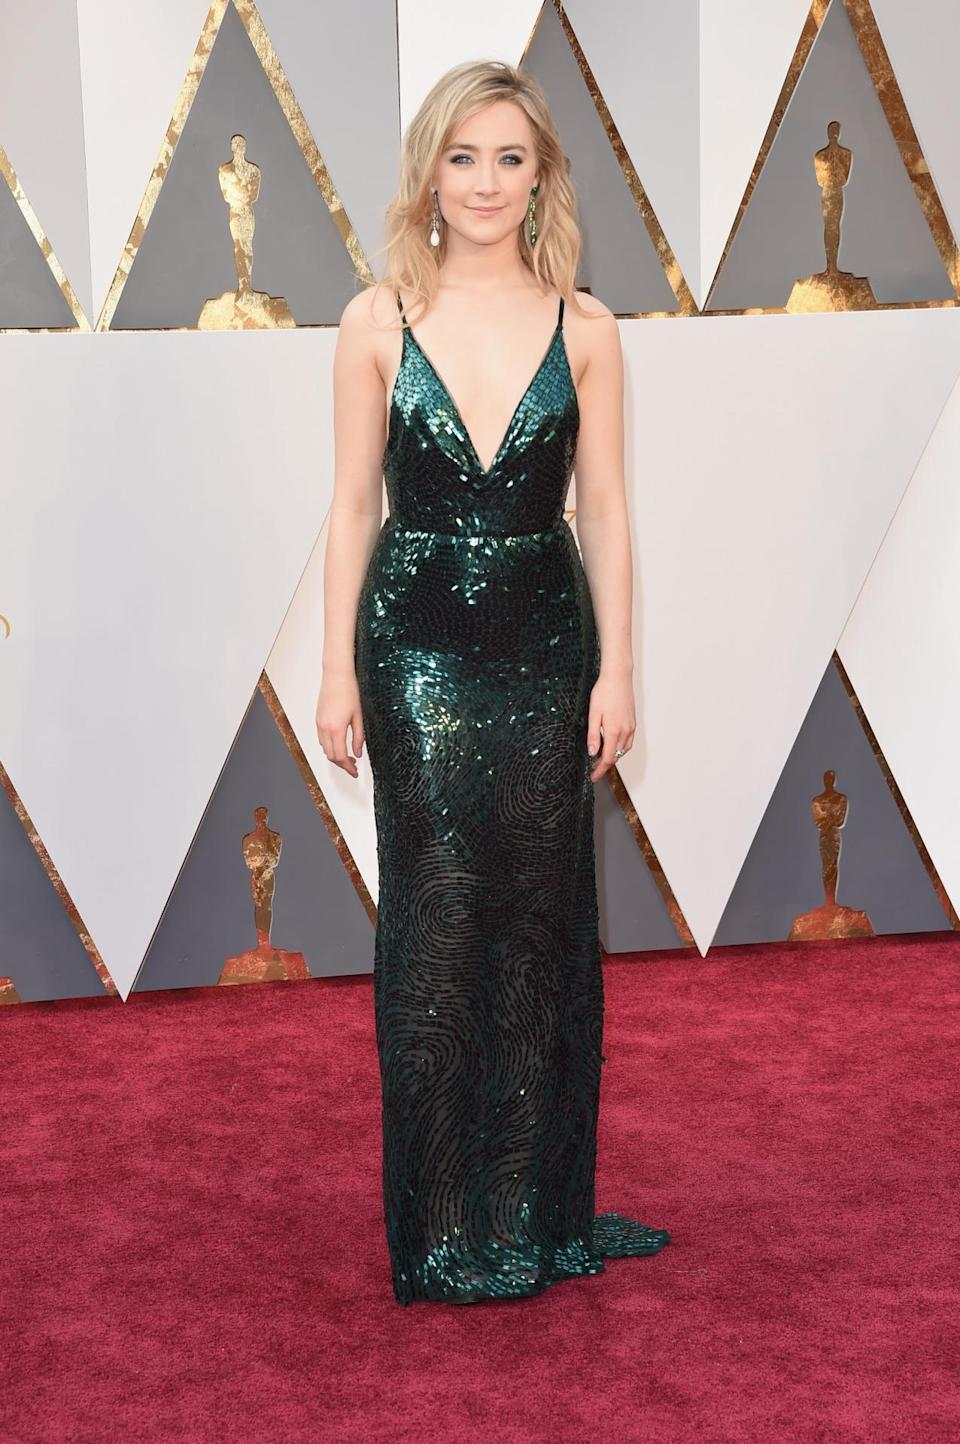 <p>In 2007, Irish actress Ronan was nominated for an Oscar for her role in <i>Atonement </i>— but it was her star turn in 2015's <i>Brooklyn</i> that really allowed the 21-year-old to break out some fancy frocks. From Stella McCartney jumpsuits to Gucci minis and, of course, her glitzy Calvin Klein gown at the Oscars, Ronan isn't afraid to try new things on the red carpet. <i>(Photo: Getty)</i></p>